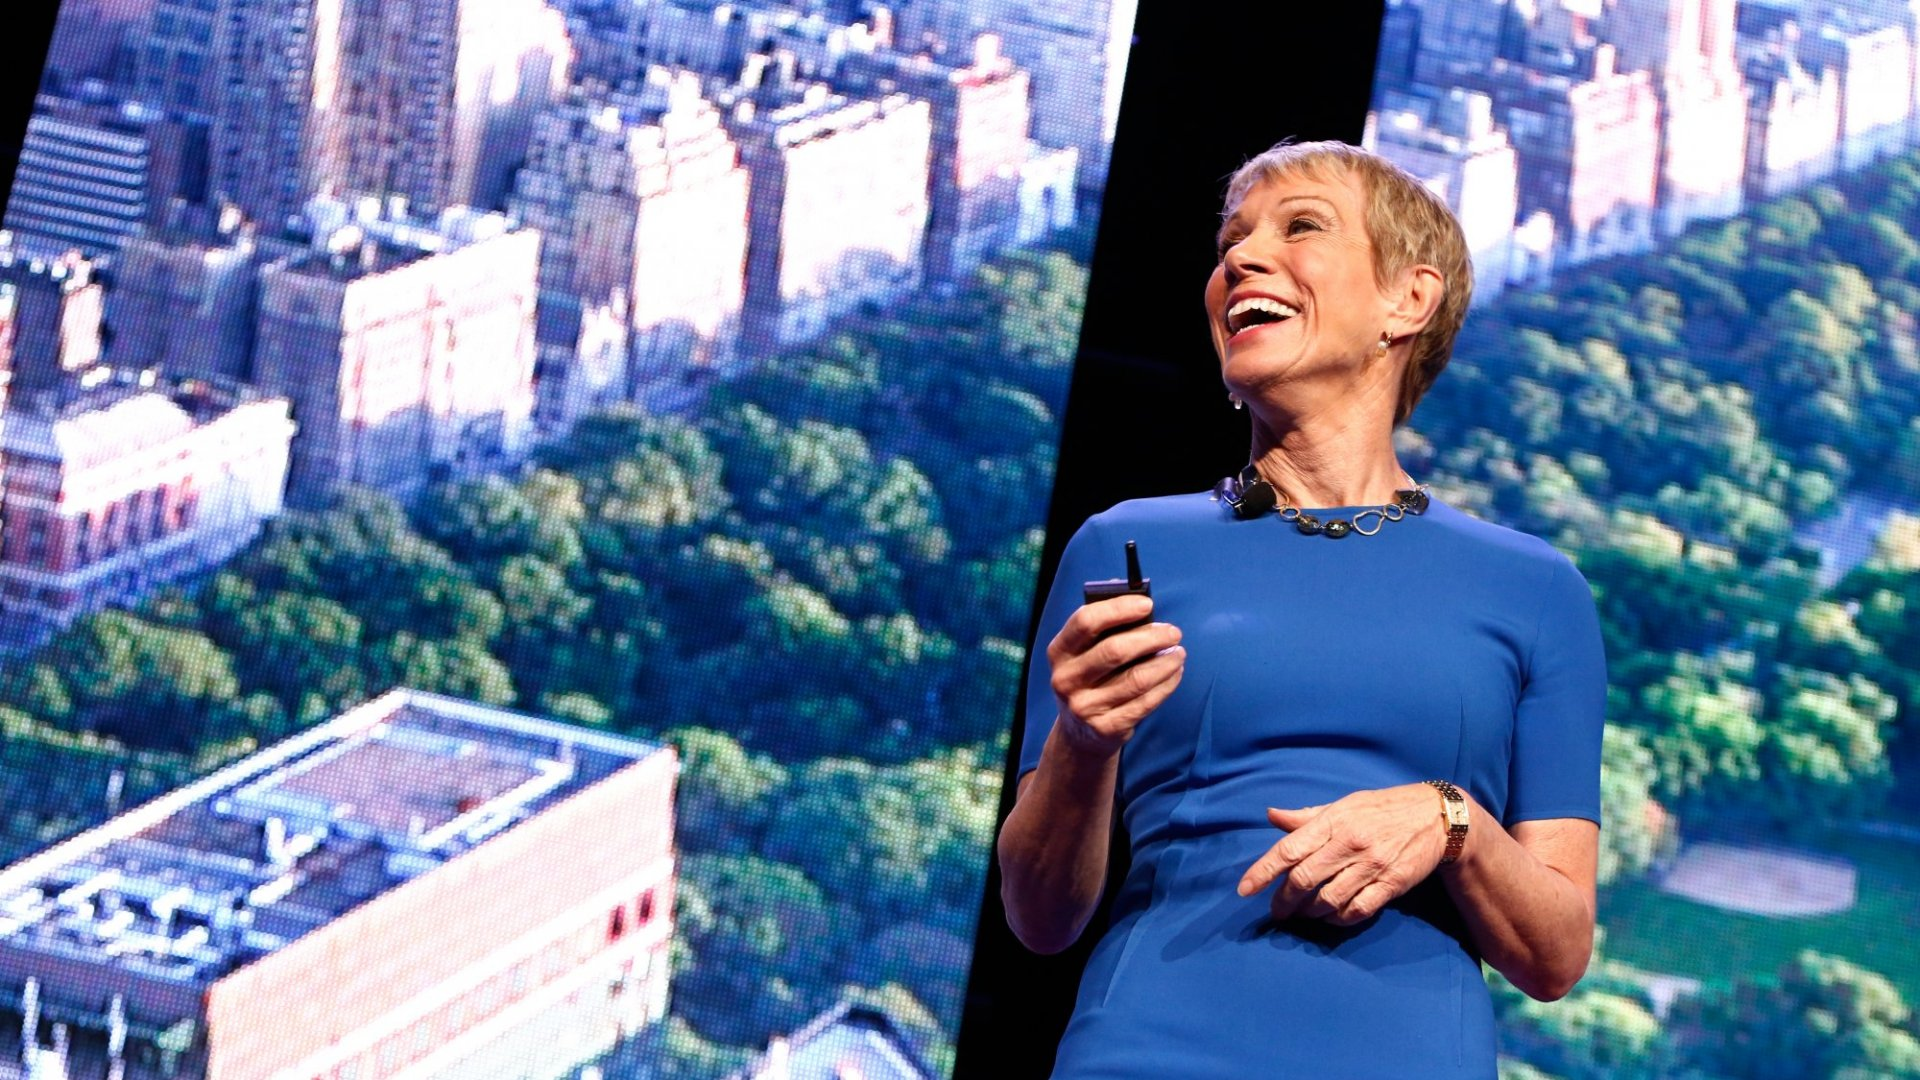 3 Pieces of Advice Millionaire Barbara Corcoran Would Give Her Younger Self